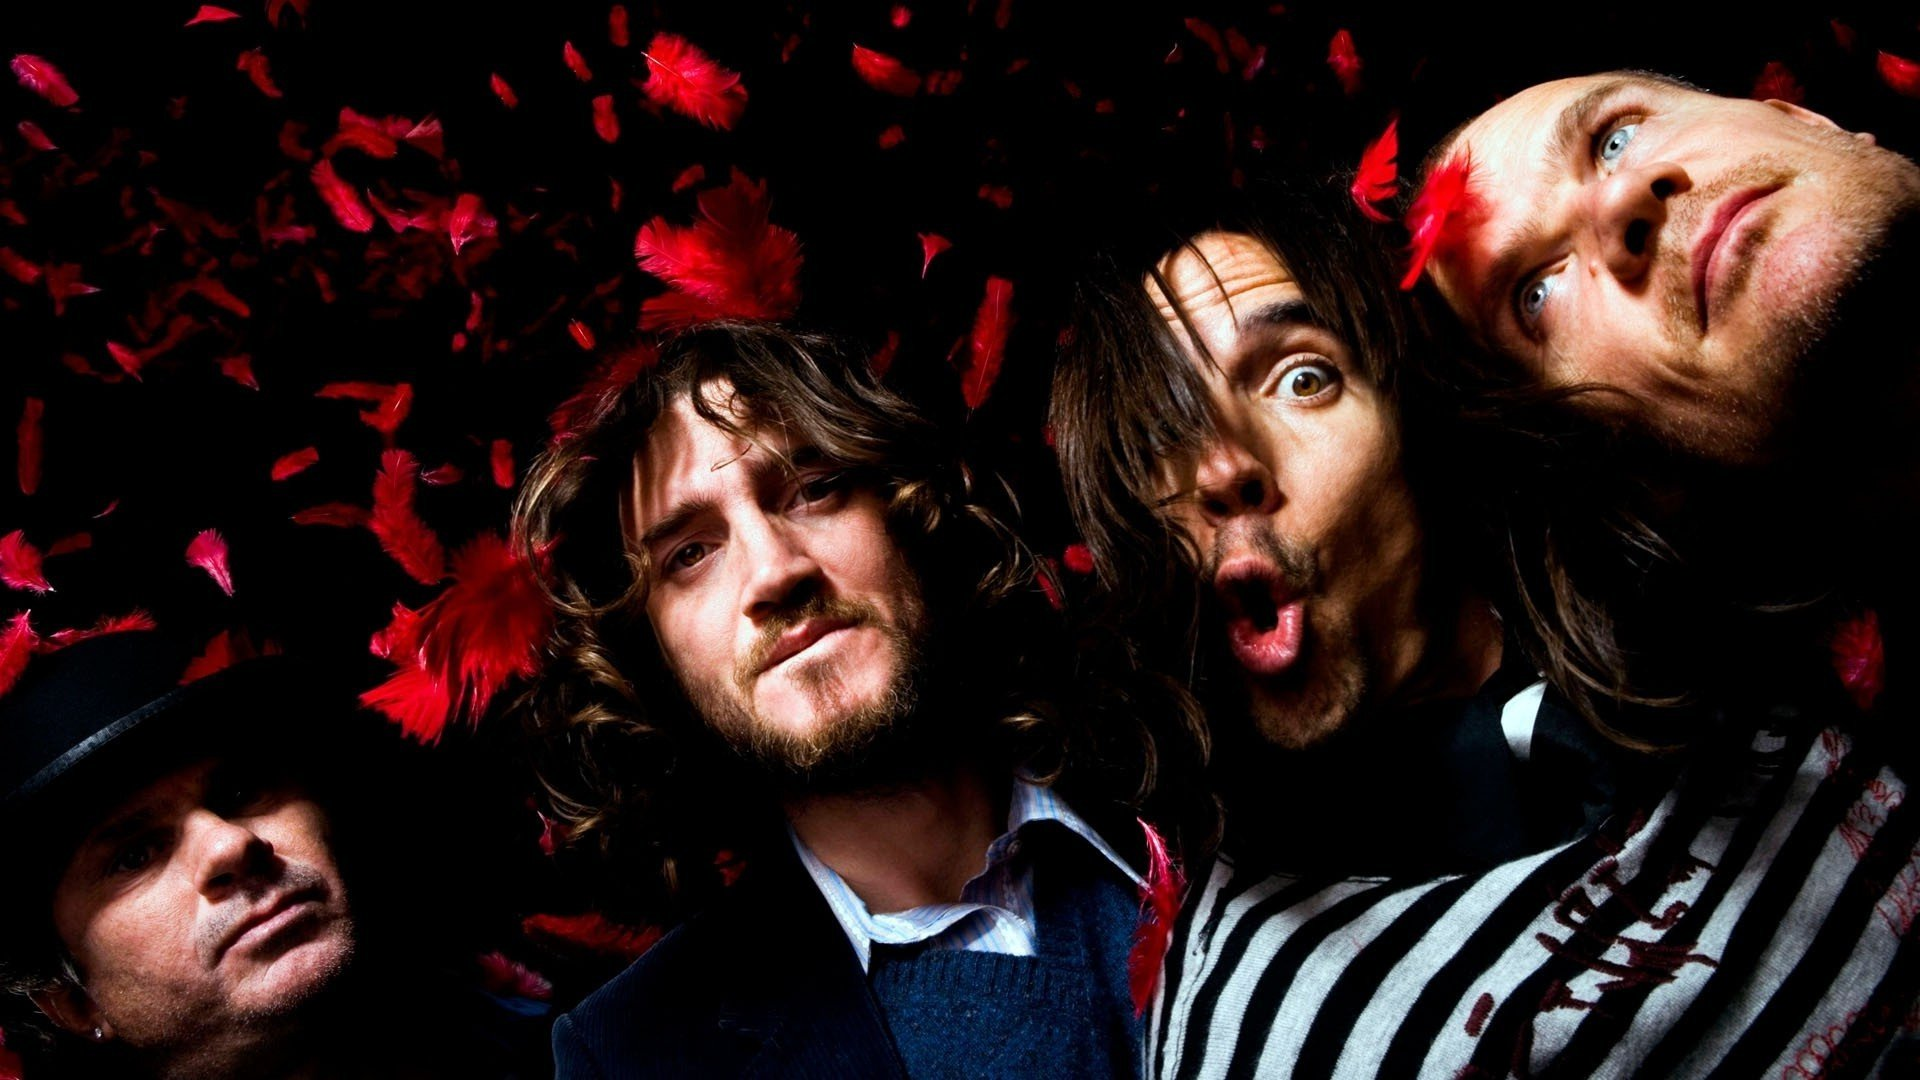 Top 10 Red Hot Chili Peppers Songs collected by Tips Clear